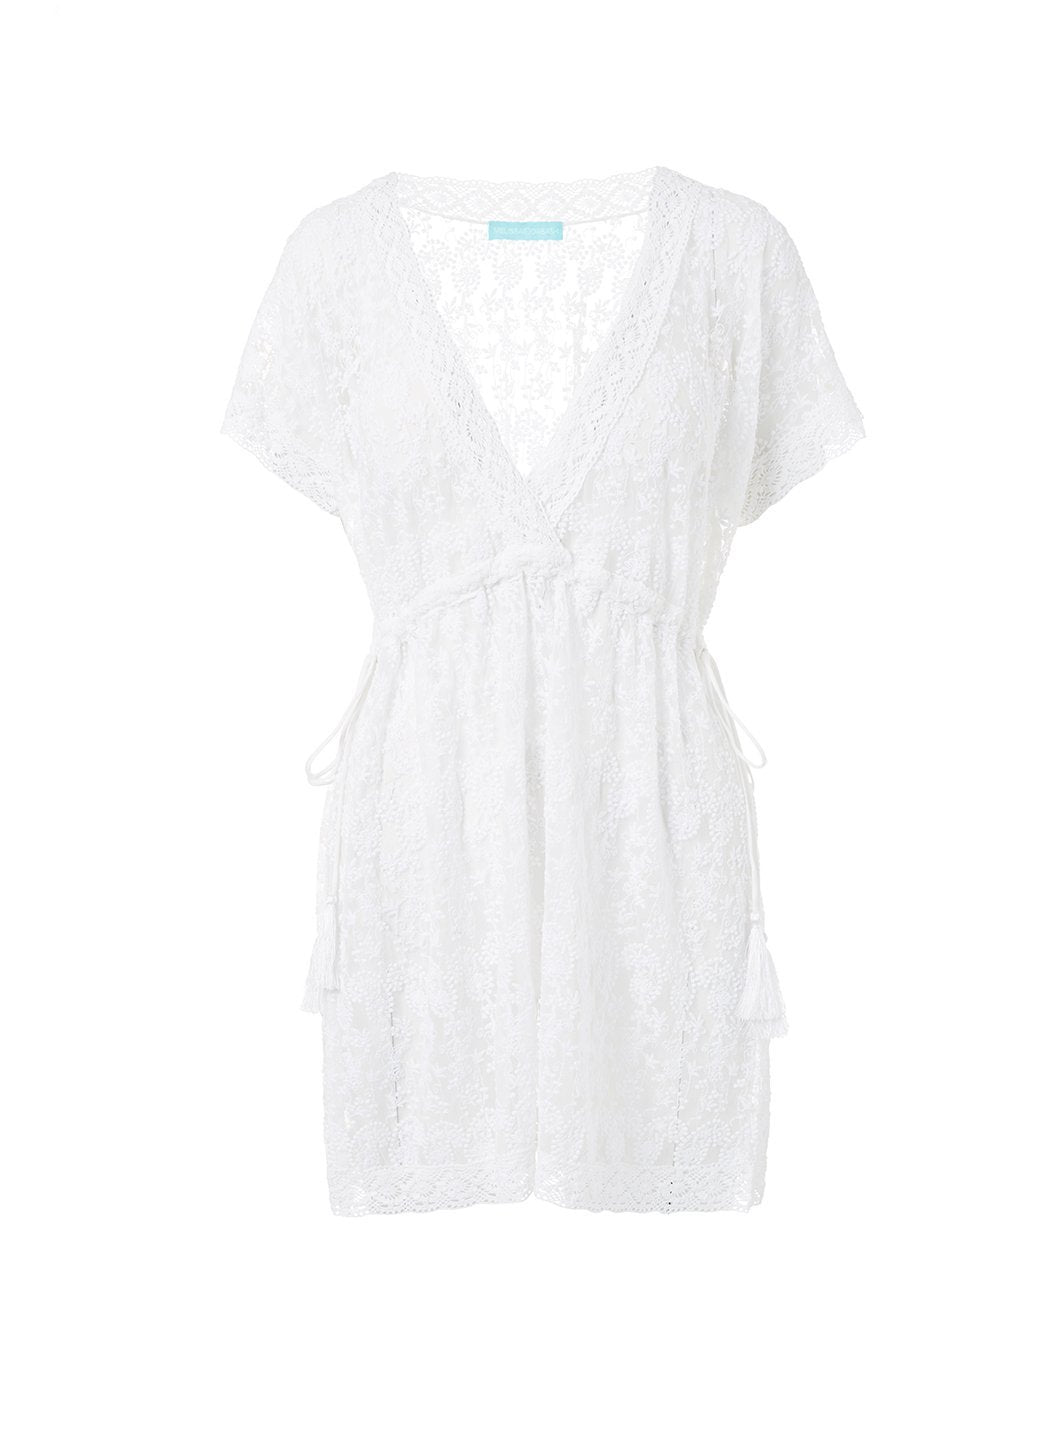 adelina white embroidered short tieside beach dress 2019